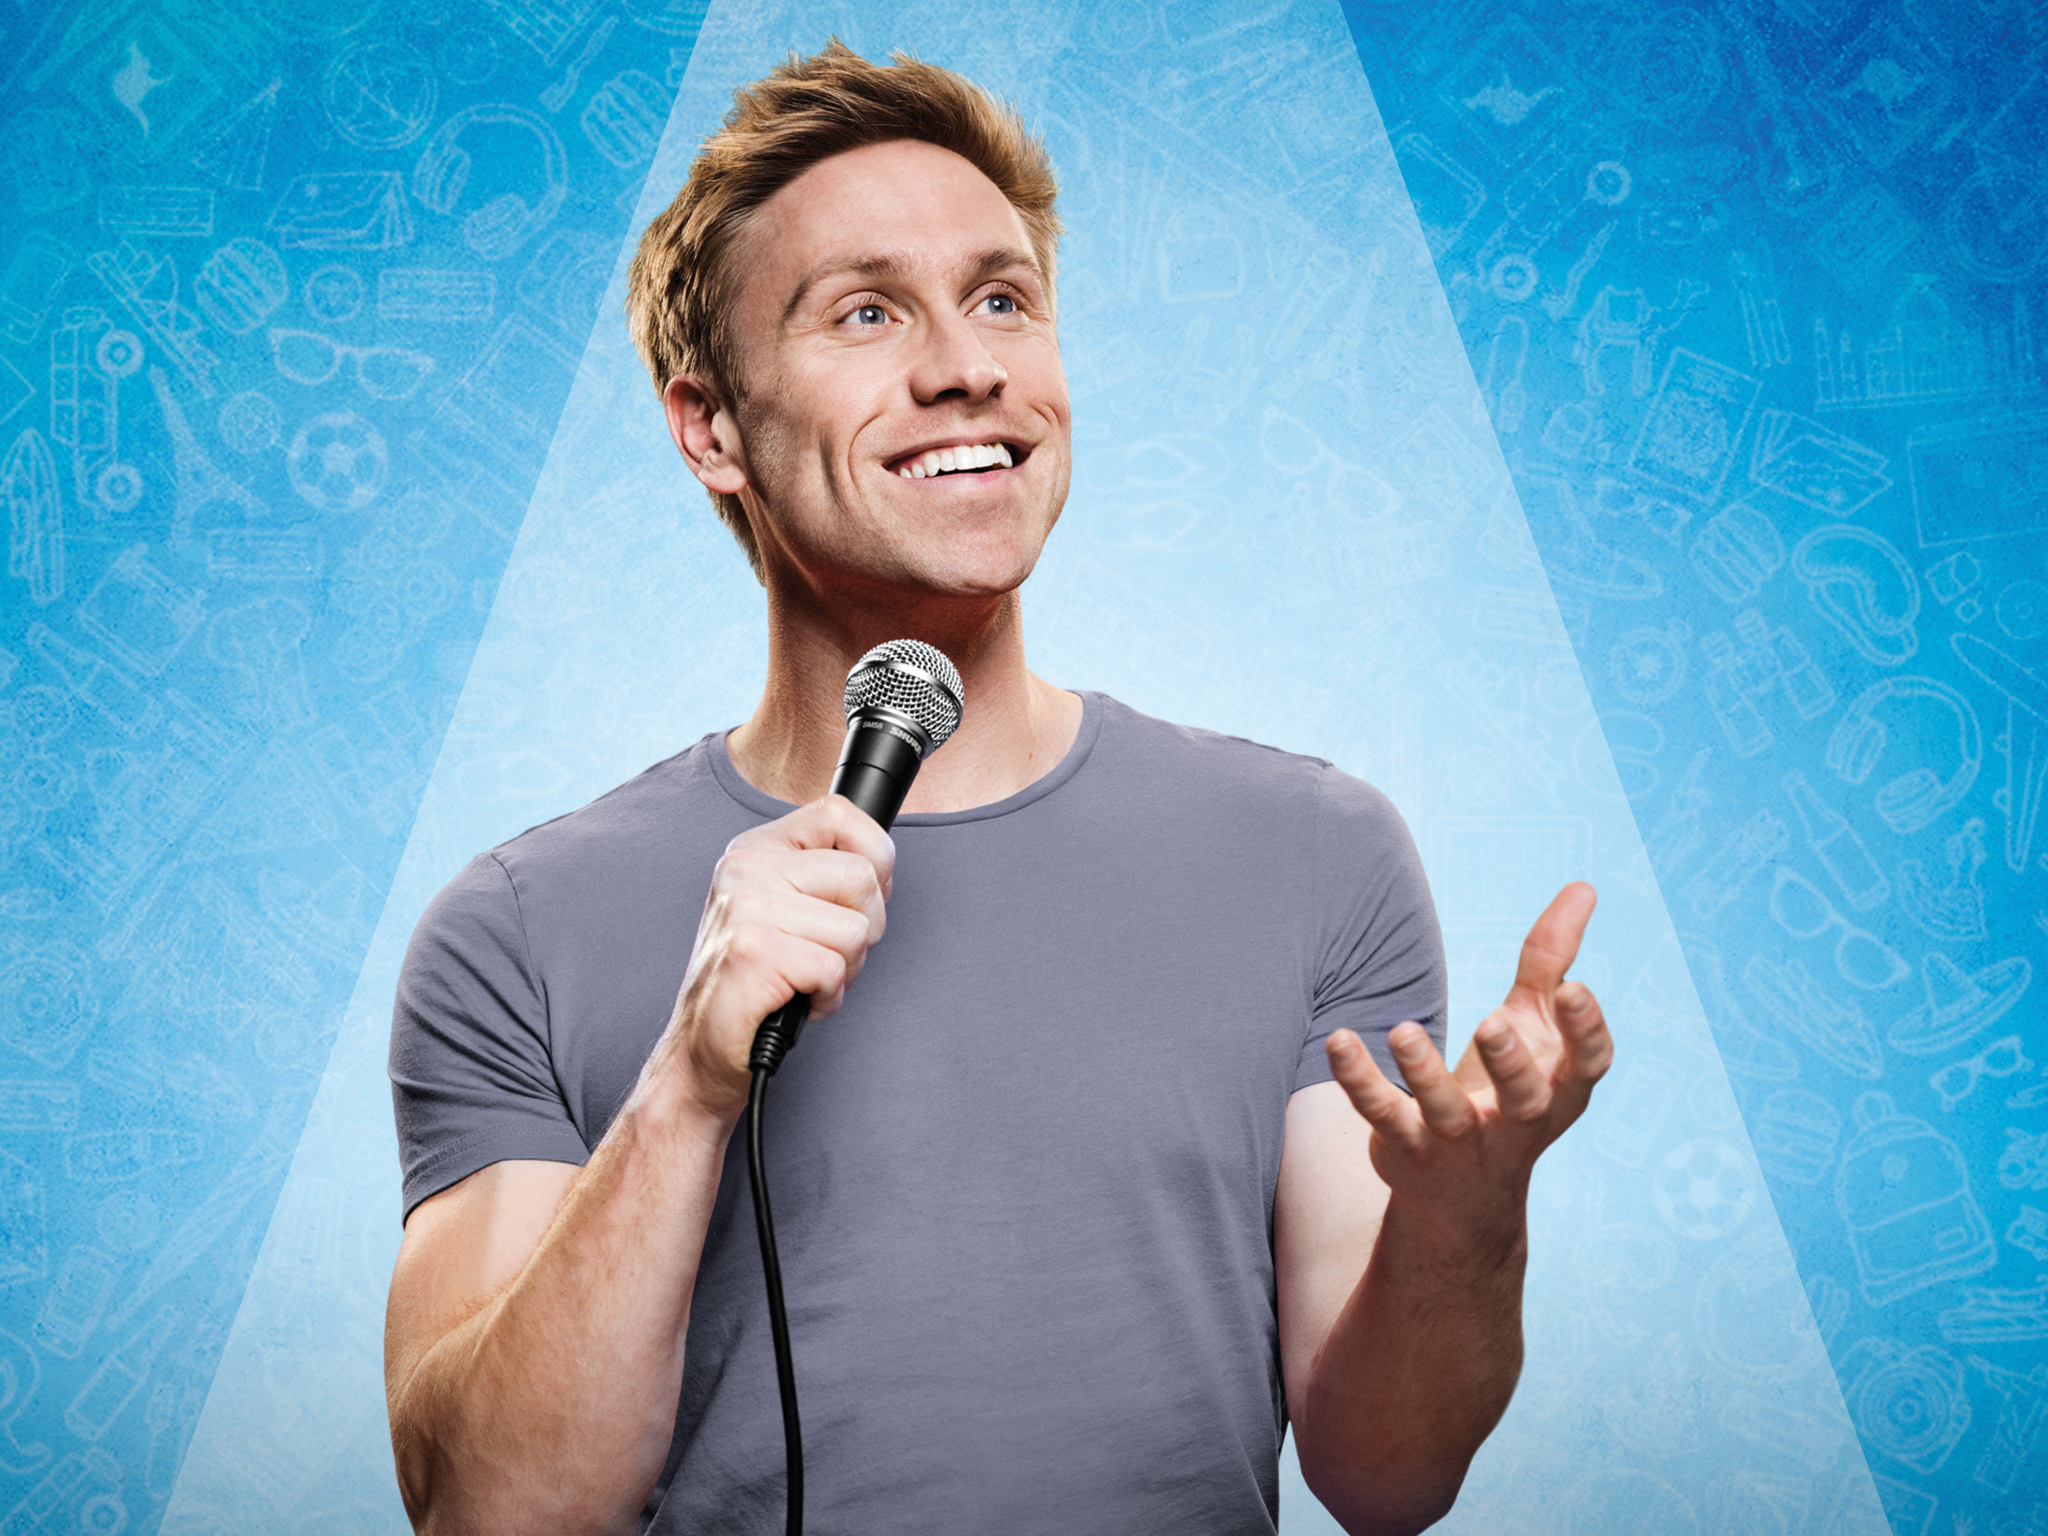 Interview: Russell Howard on his new tour and why it's a fascinating time to be a comedian